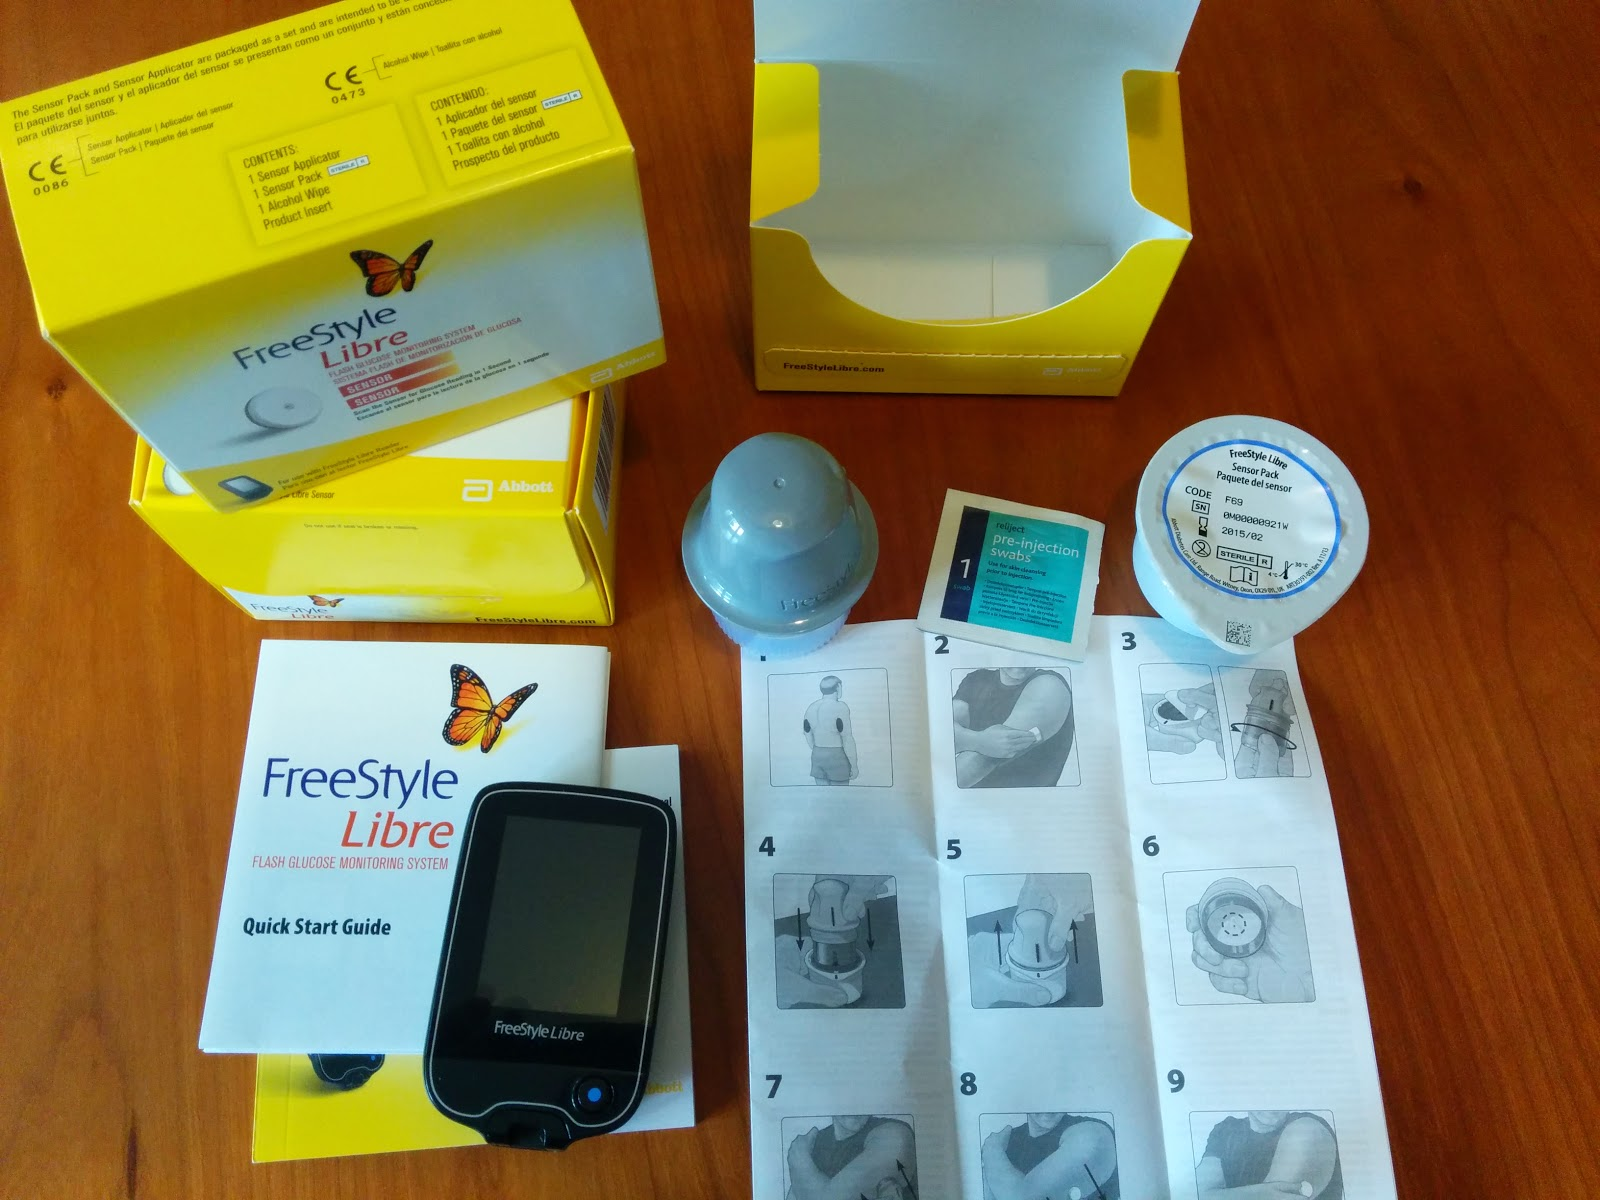 Buy freestyle libre flash glucose monitoring system